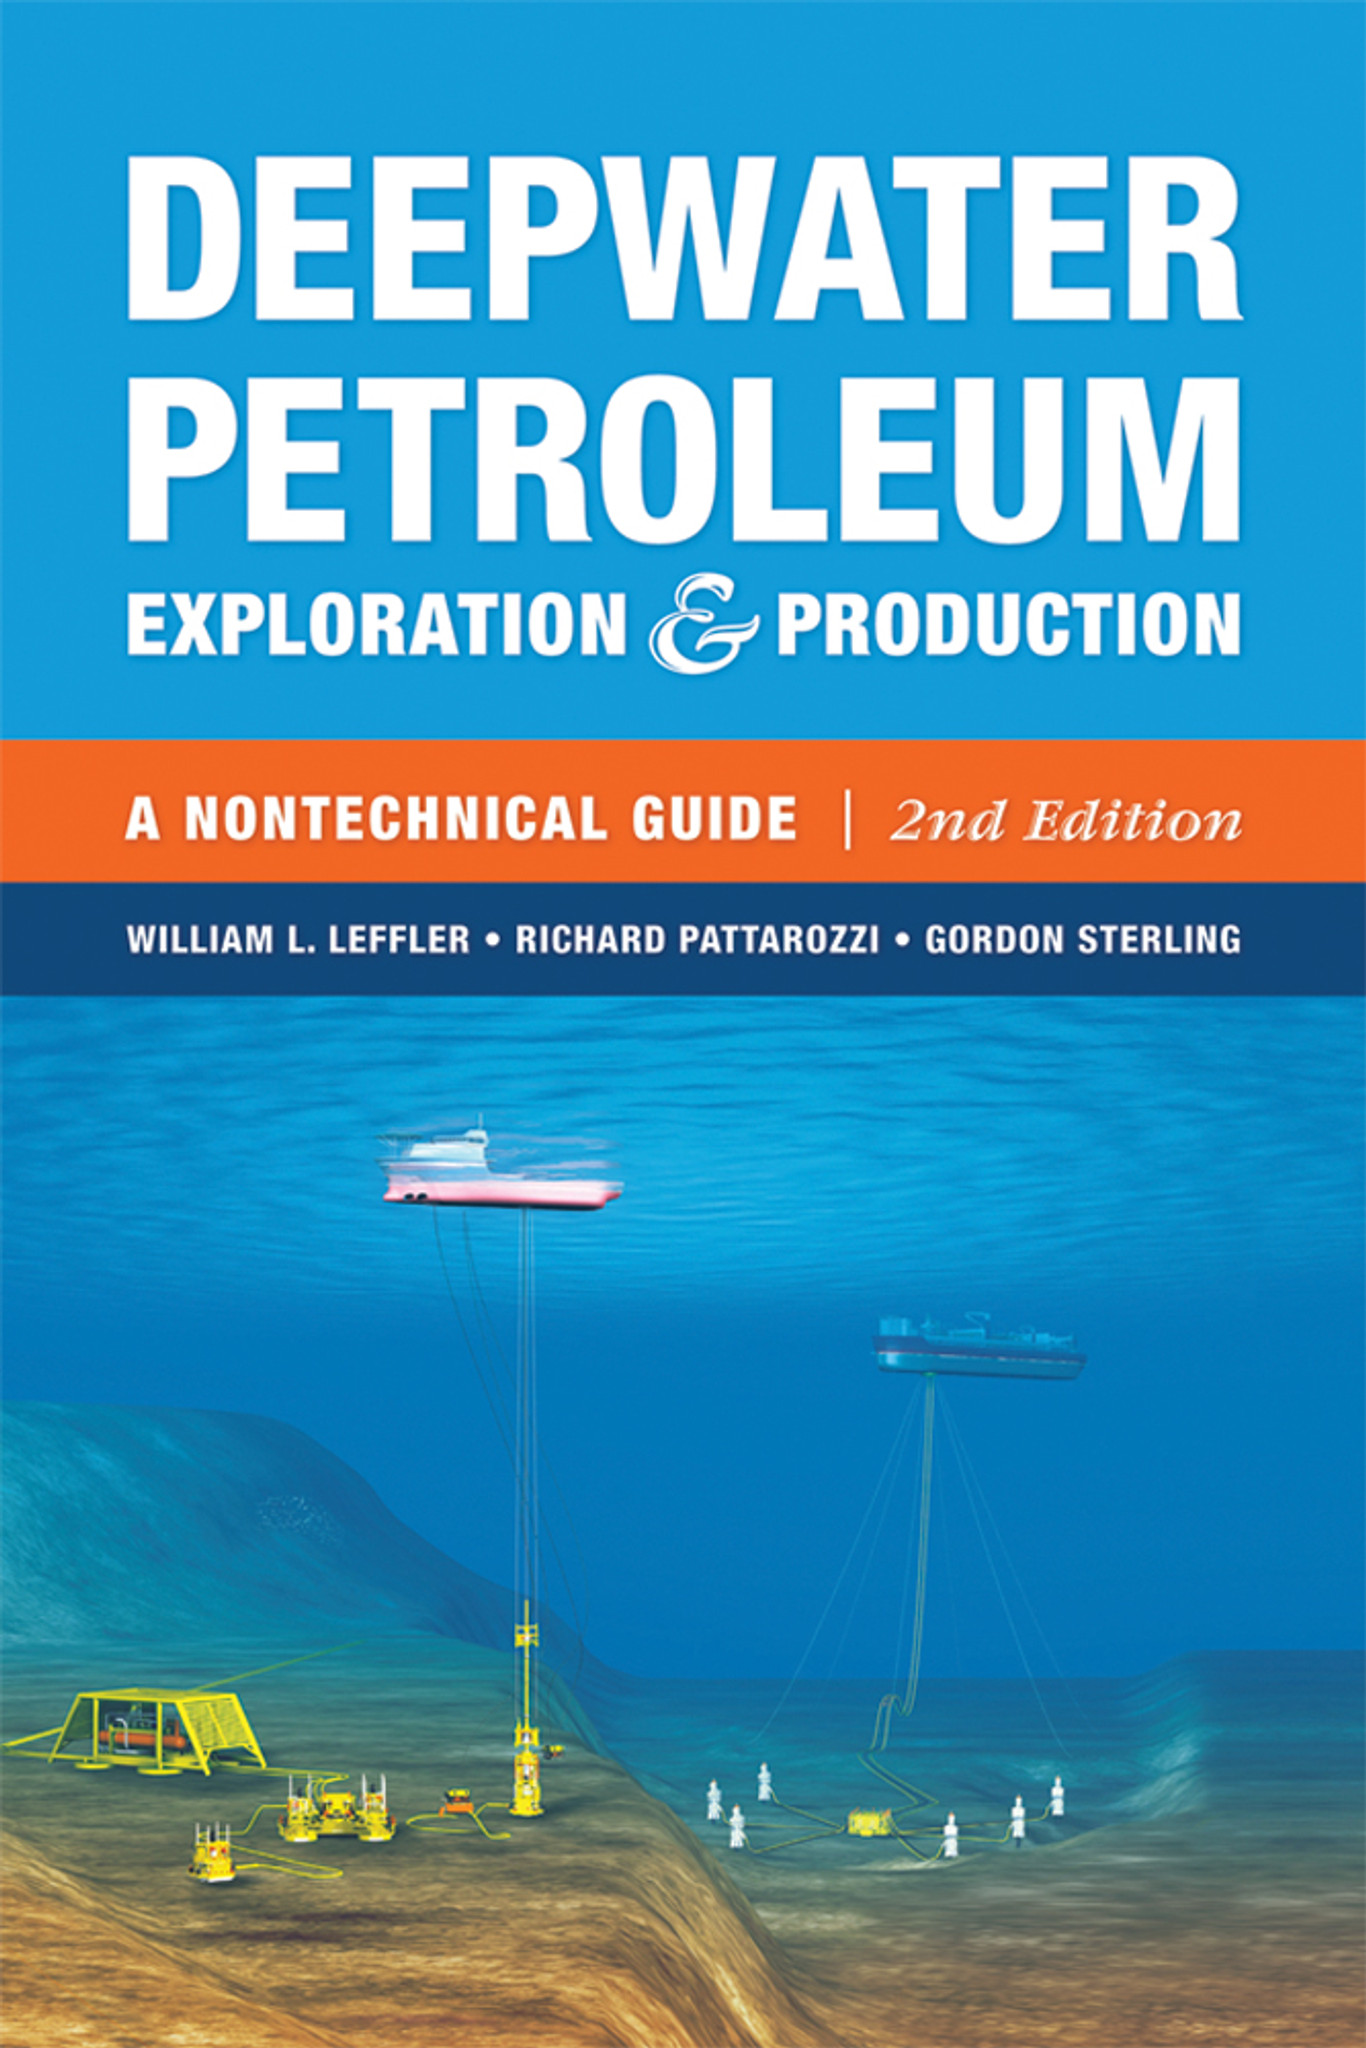 LNG: A Nontechnical Guide download pdfgolkes